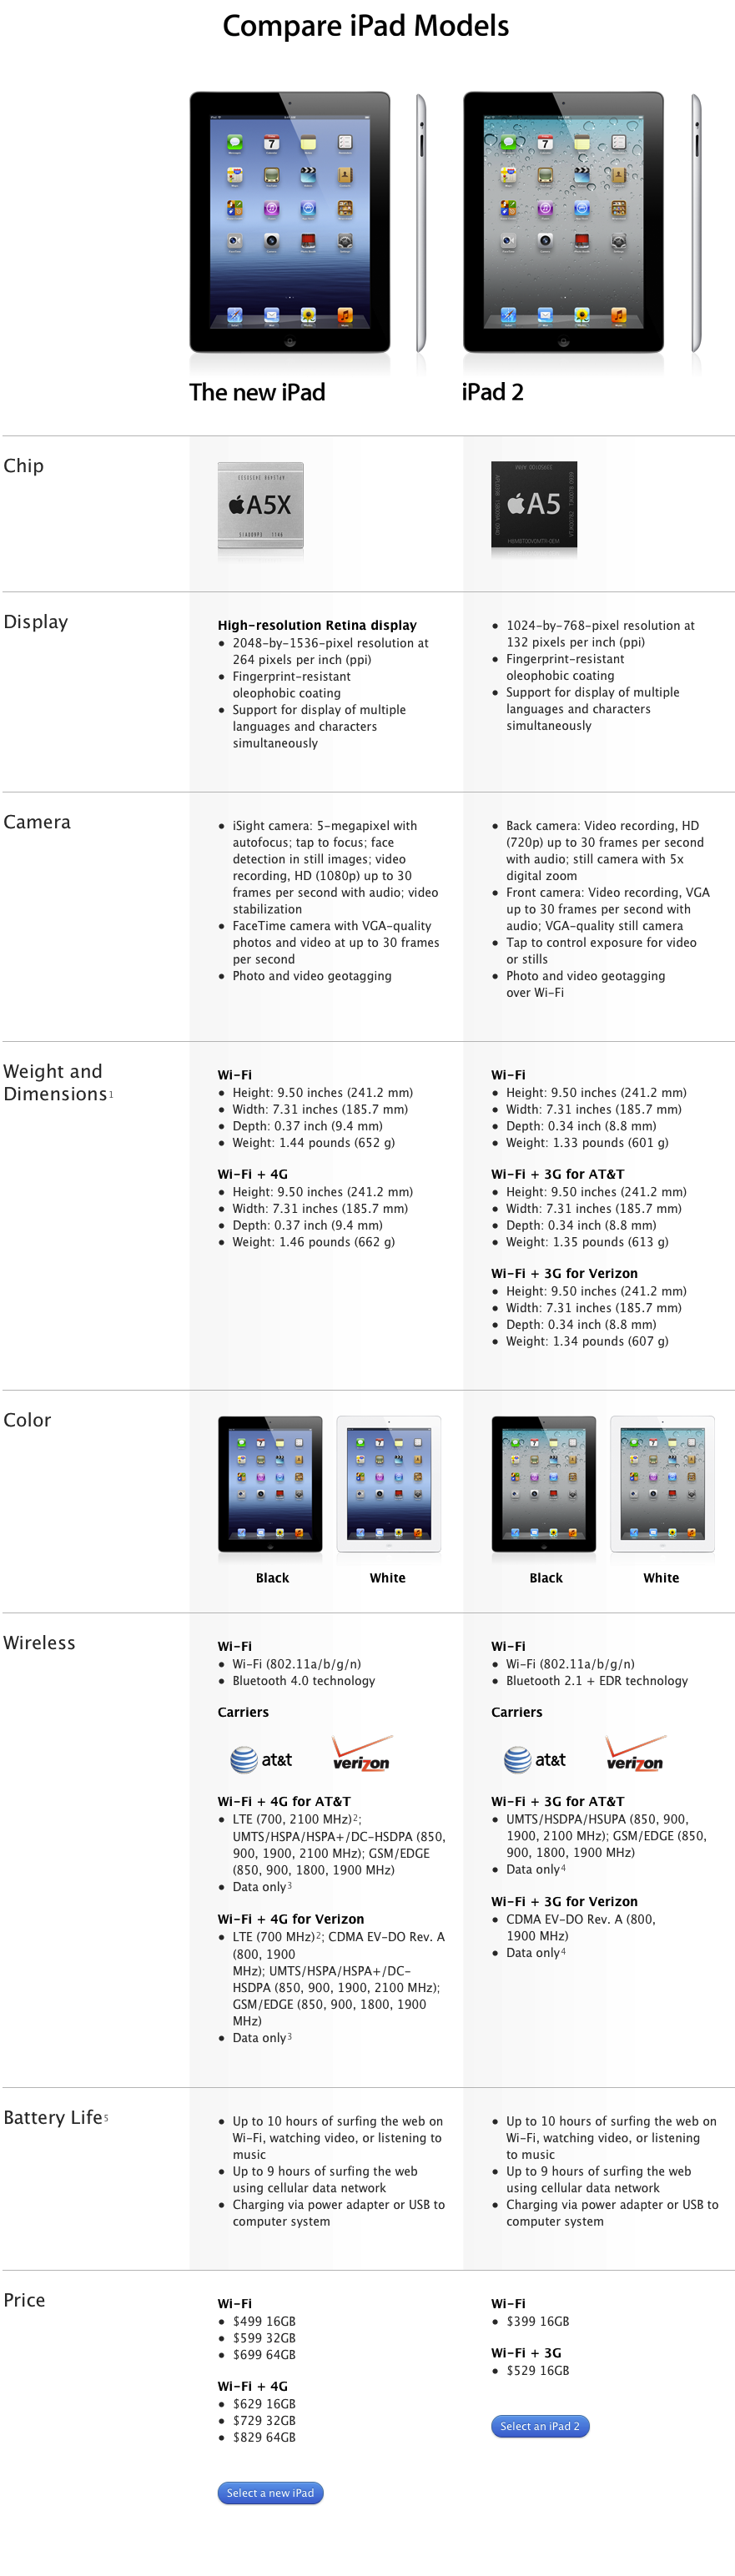 new ipad vs ipad2